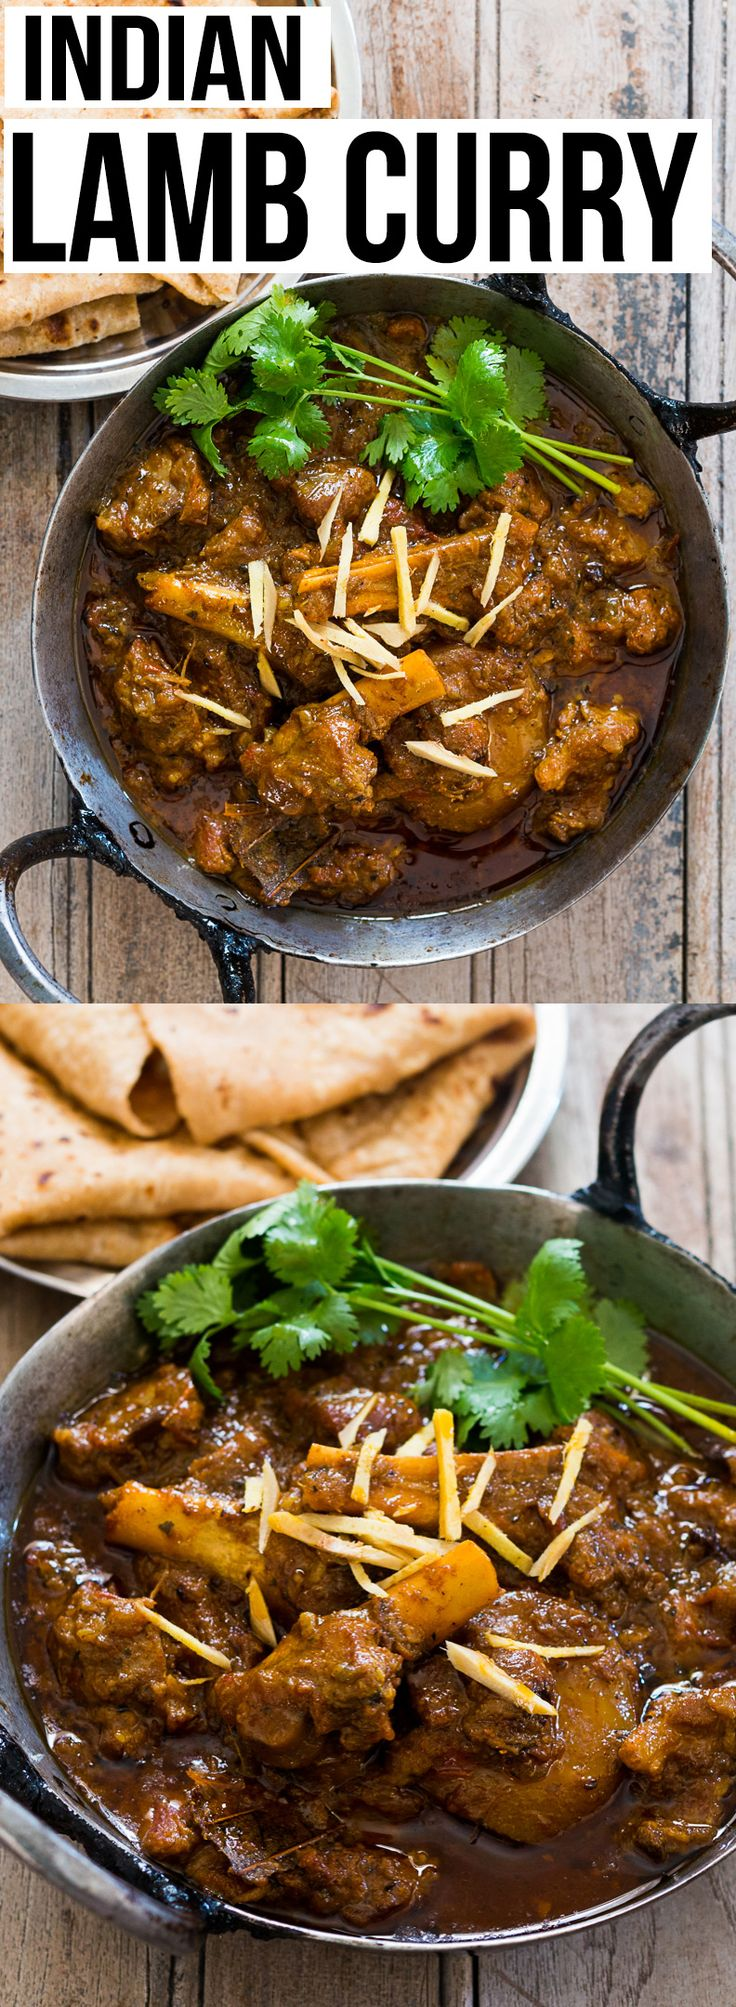 2283 best indian recipes images on pinterest indian recipes this easy indian mutton curry will soon become your favorite bowl of comfort food made in a pressure cooker and perfect with basmati rice my food story forumfinder